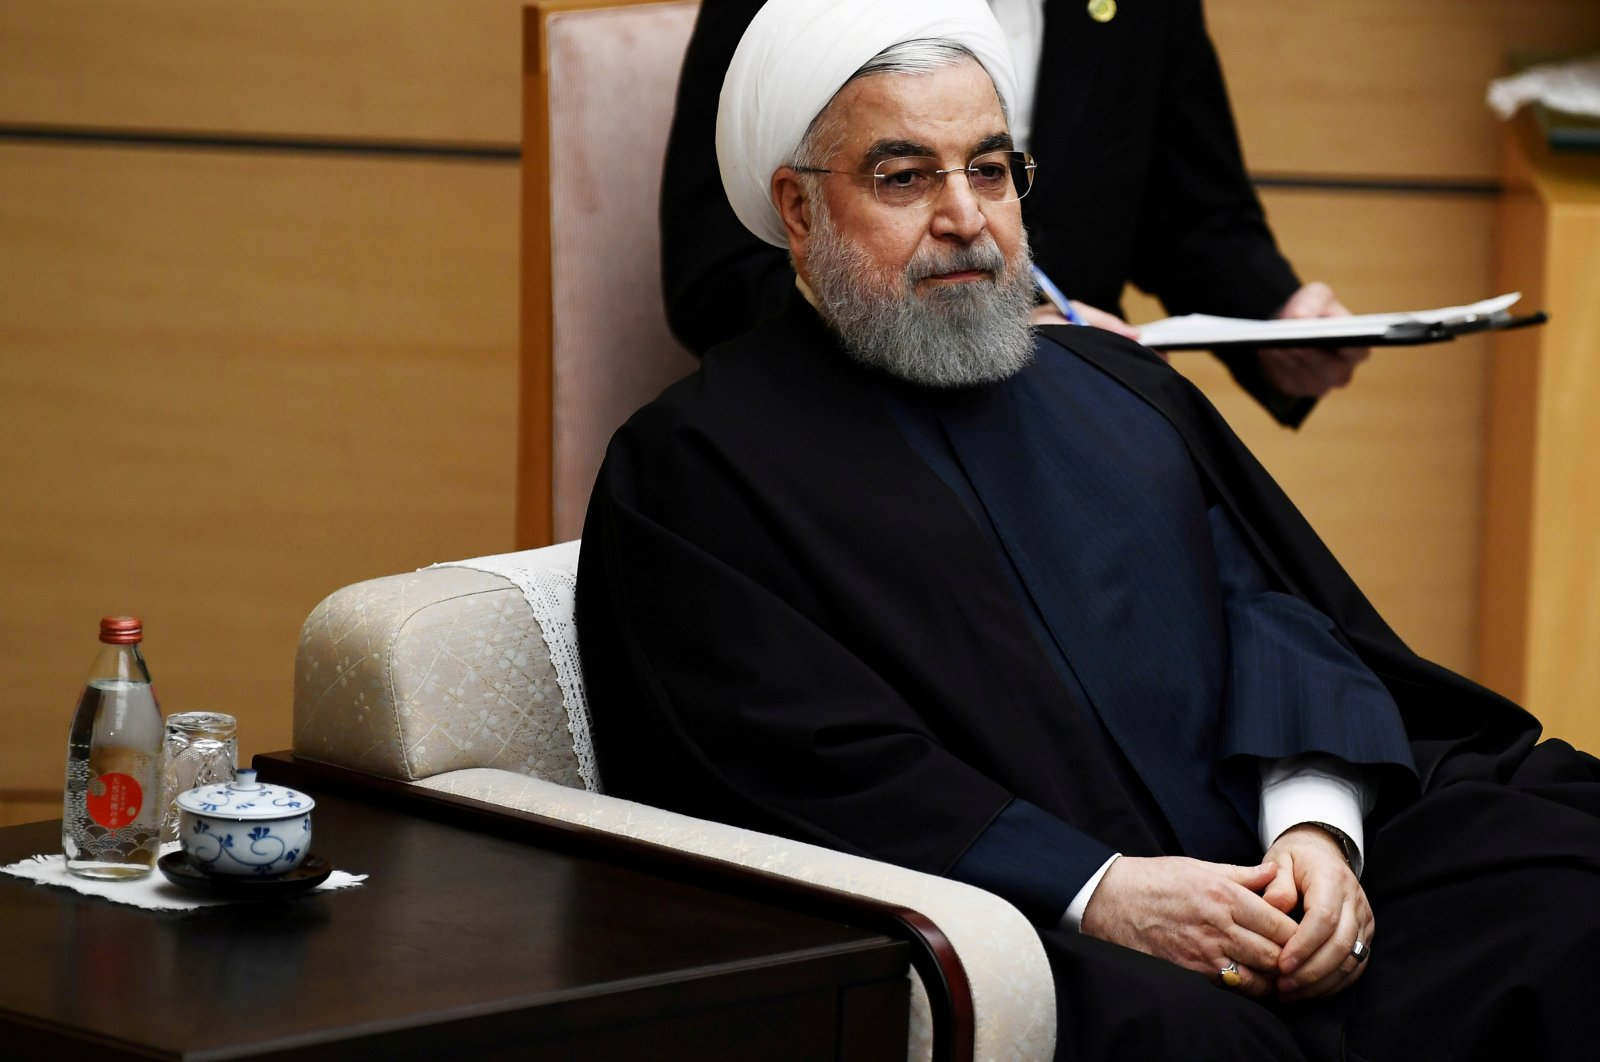 Iranian President Hassan Rouhani meets Japanese Prime Minister Shinzo Abe (not pictured) in Tokyo, Japan, Dec. 20, 2019. (Reuters Photo)